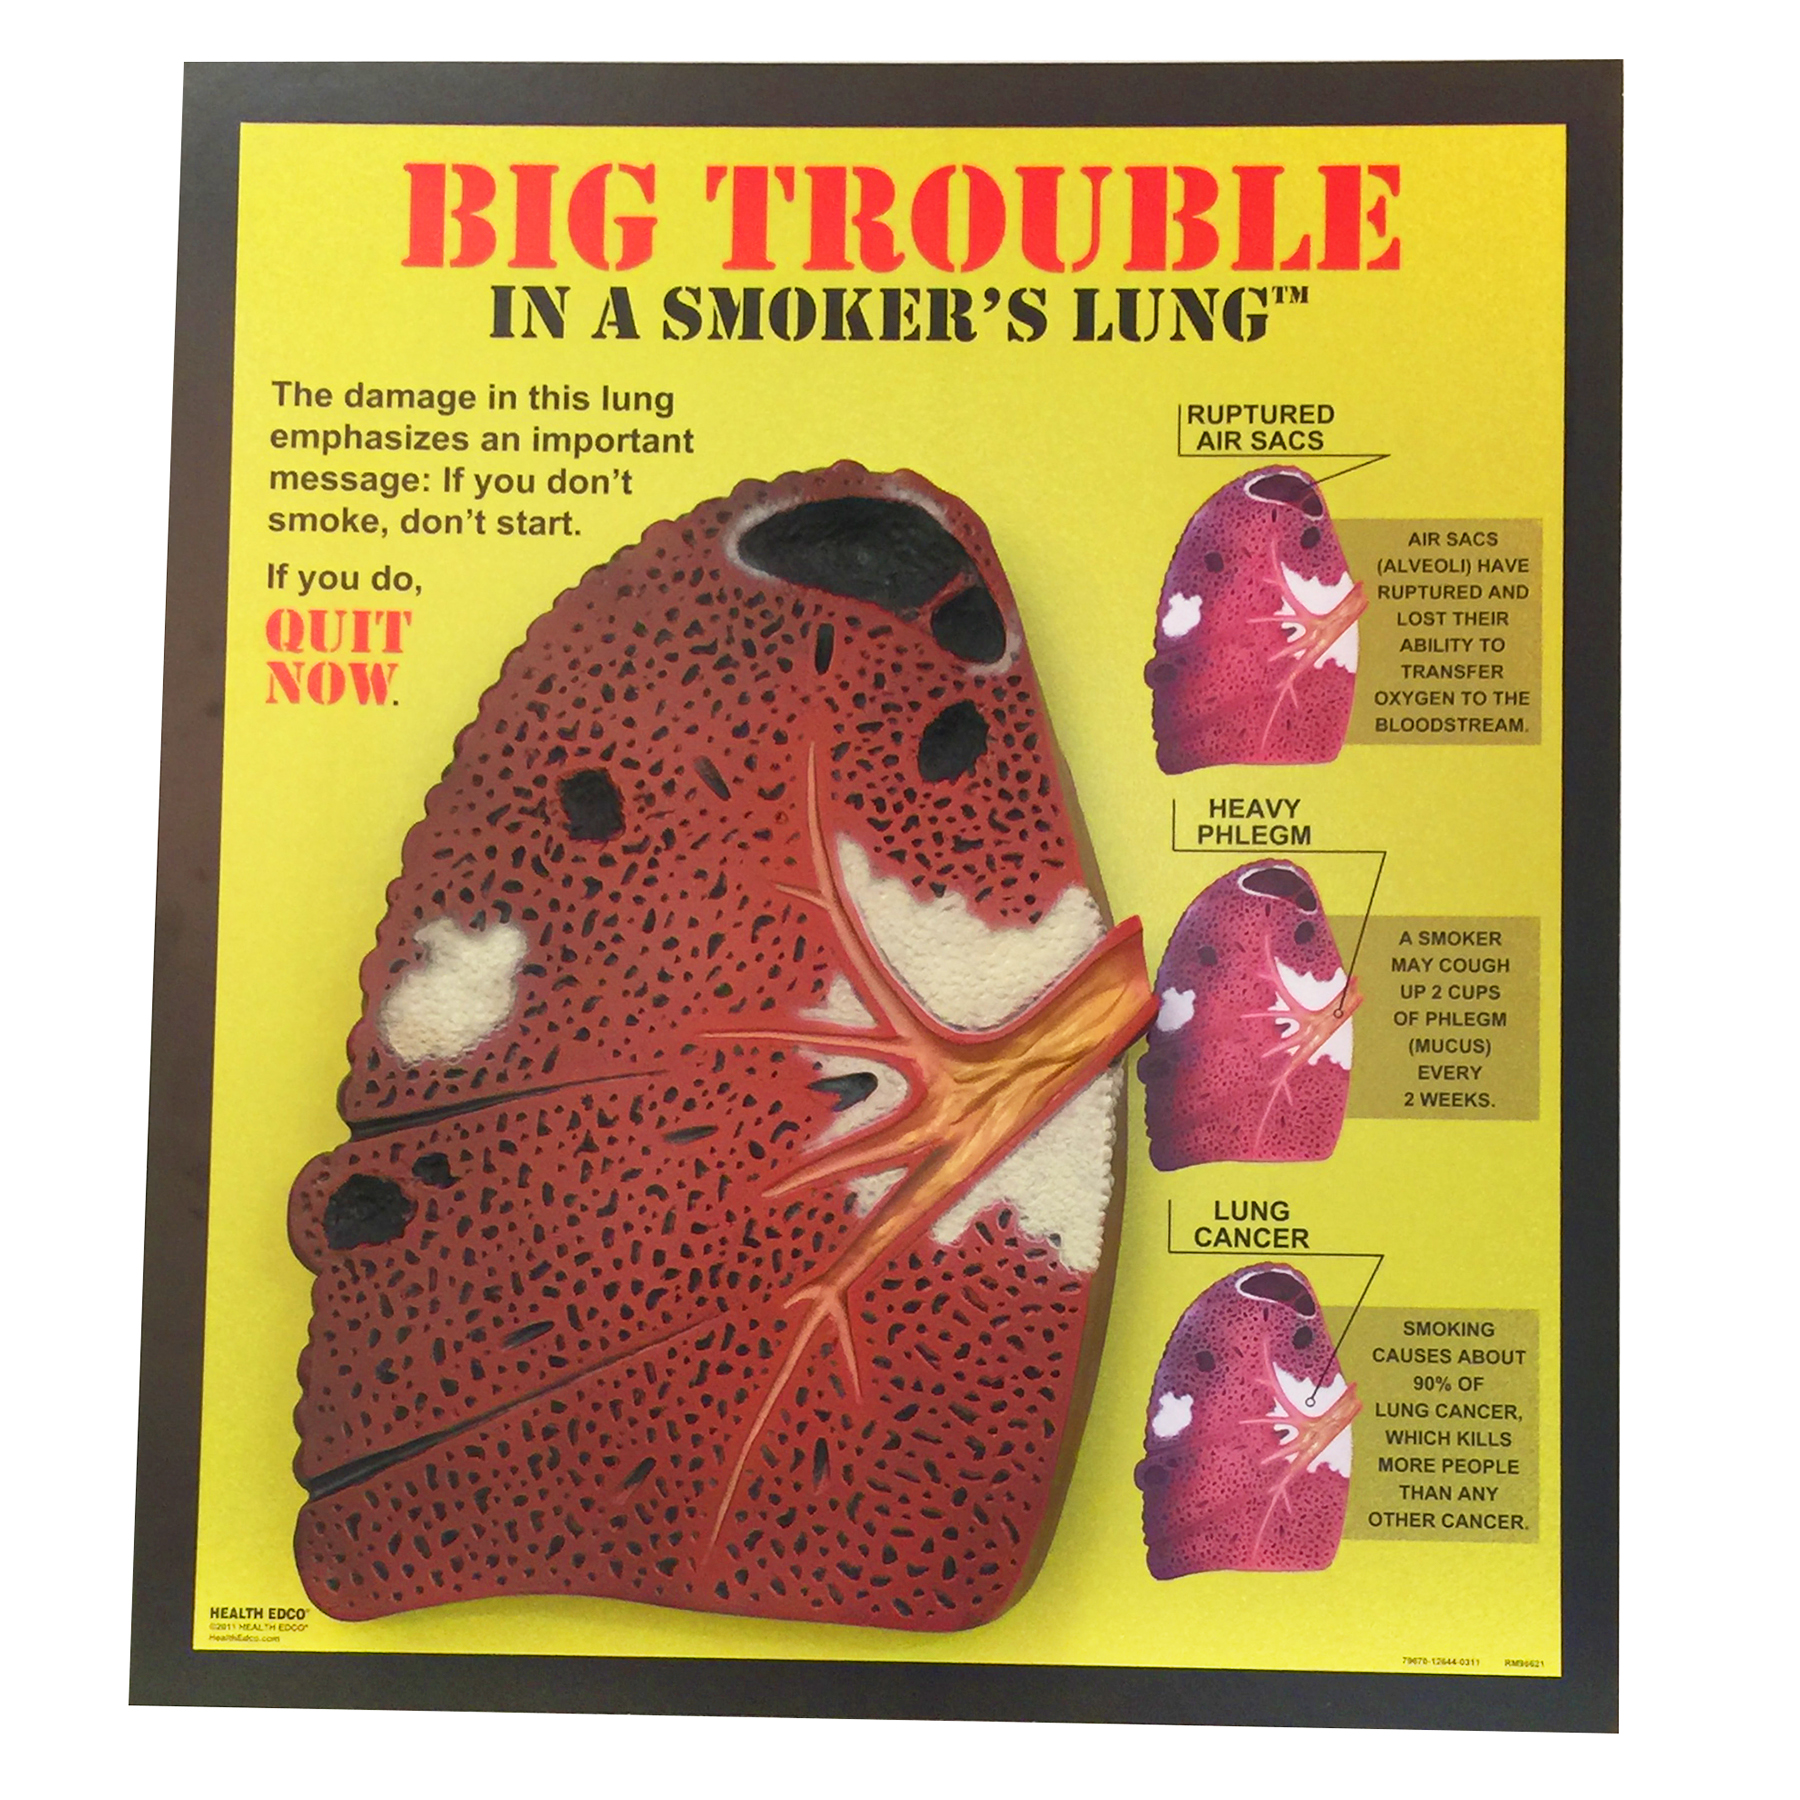 Smoker's Lung 3-D Display For Health Education | Health Edco